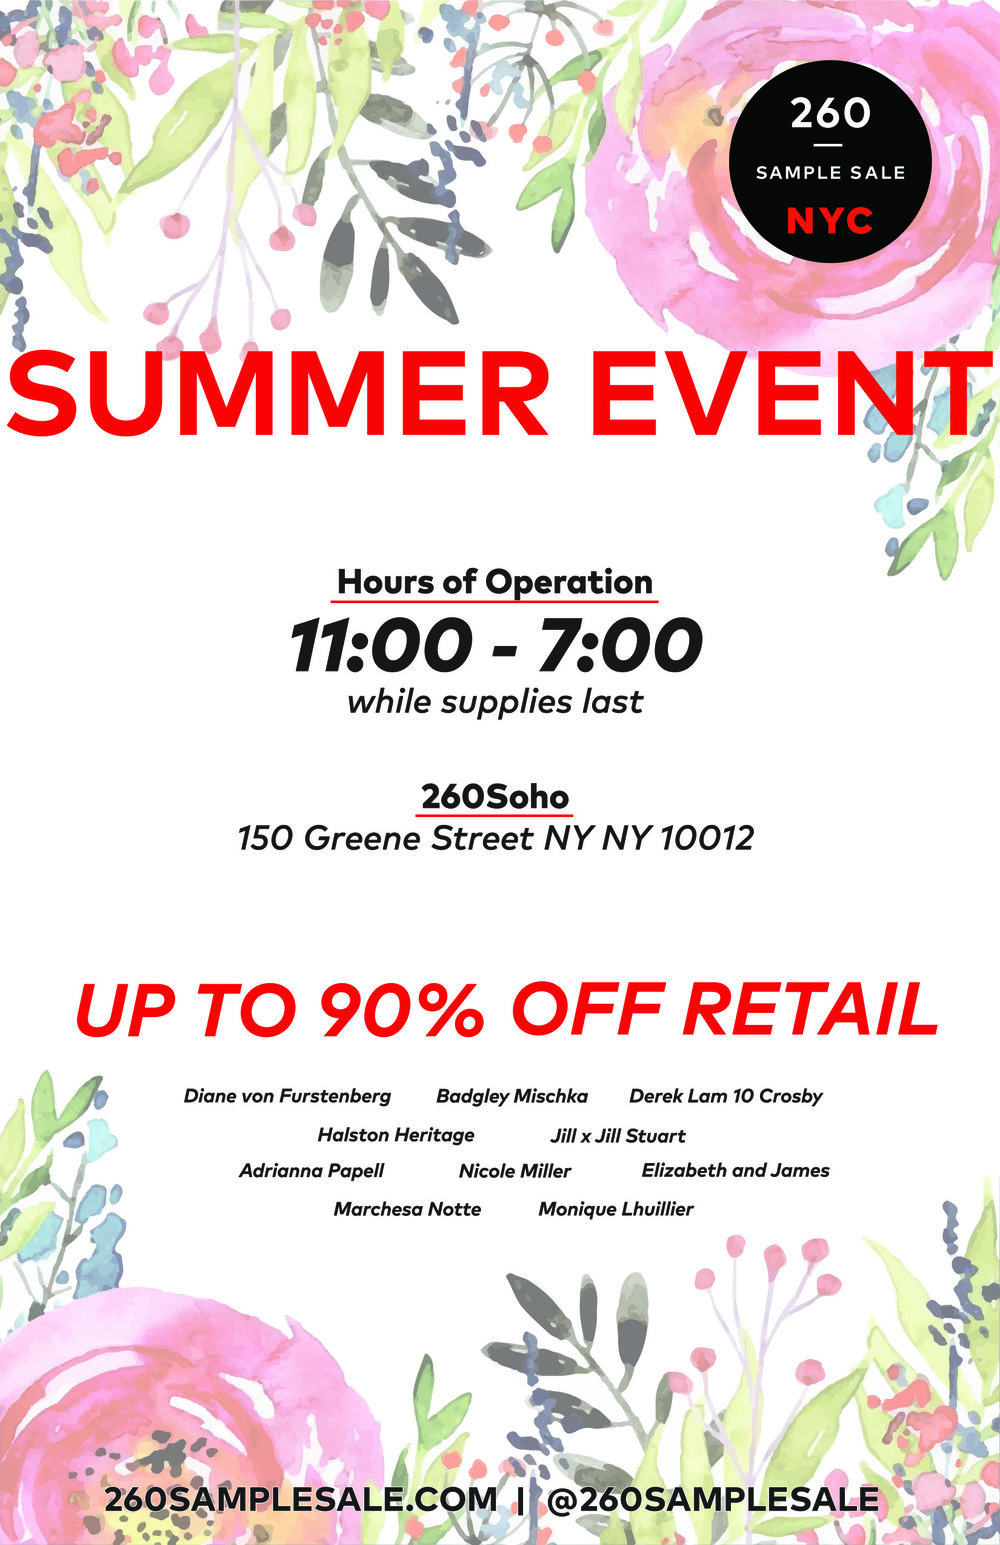 SummerEvent-RTR-260-sample-sale.jpg